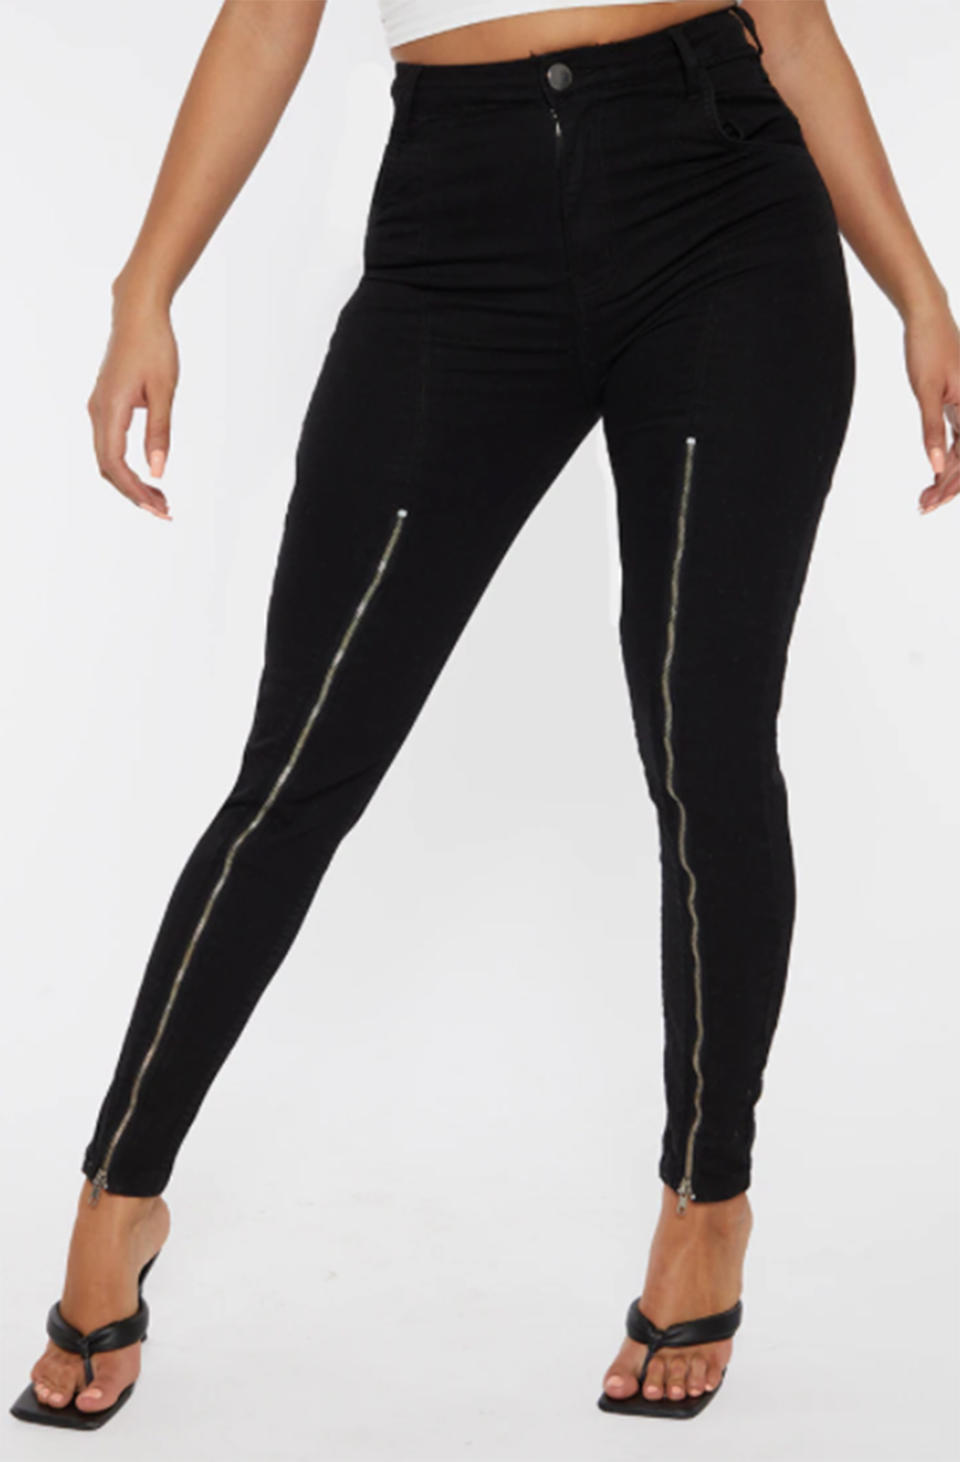 Pretty Little Thing Shape Black High Waist Zip Detail Skinny Jeans, on sale for $19. Photo: Pretty Little Thing.